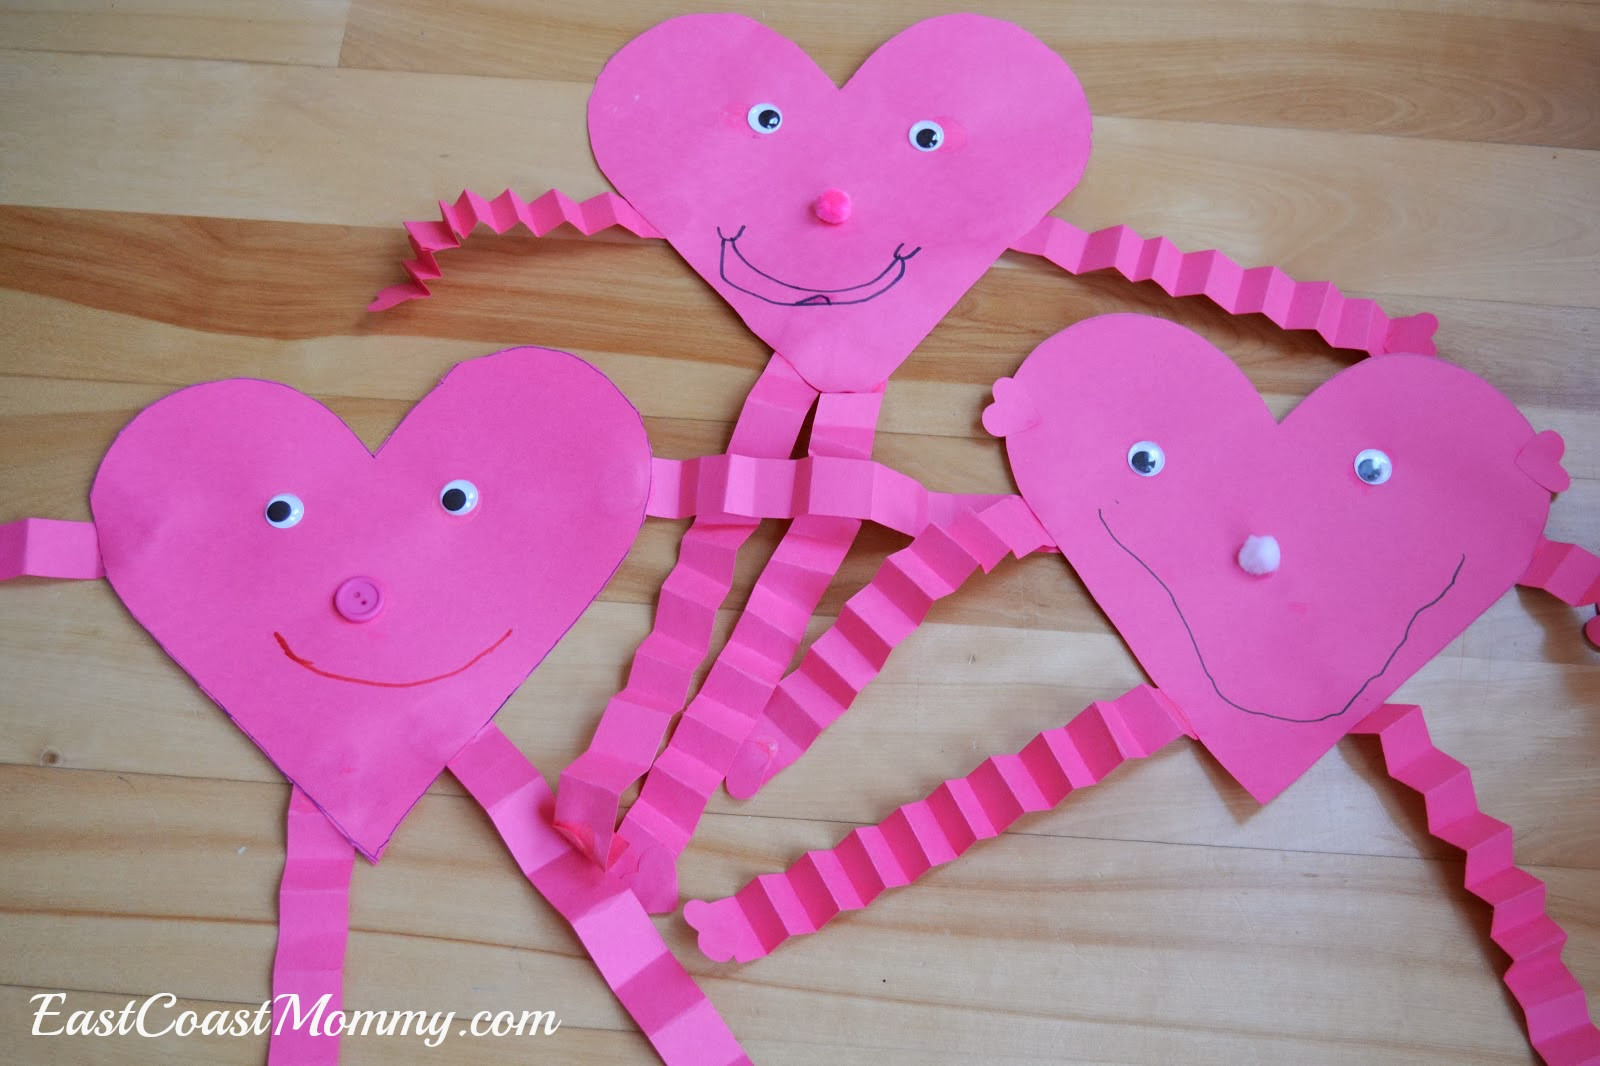 Best ideas about Valentine Crafts For Preschoolers To Make . Save or Pin 12 Easy Valentine Crafts for Toddlers & Preschoolers You Now.